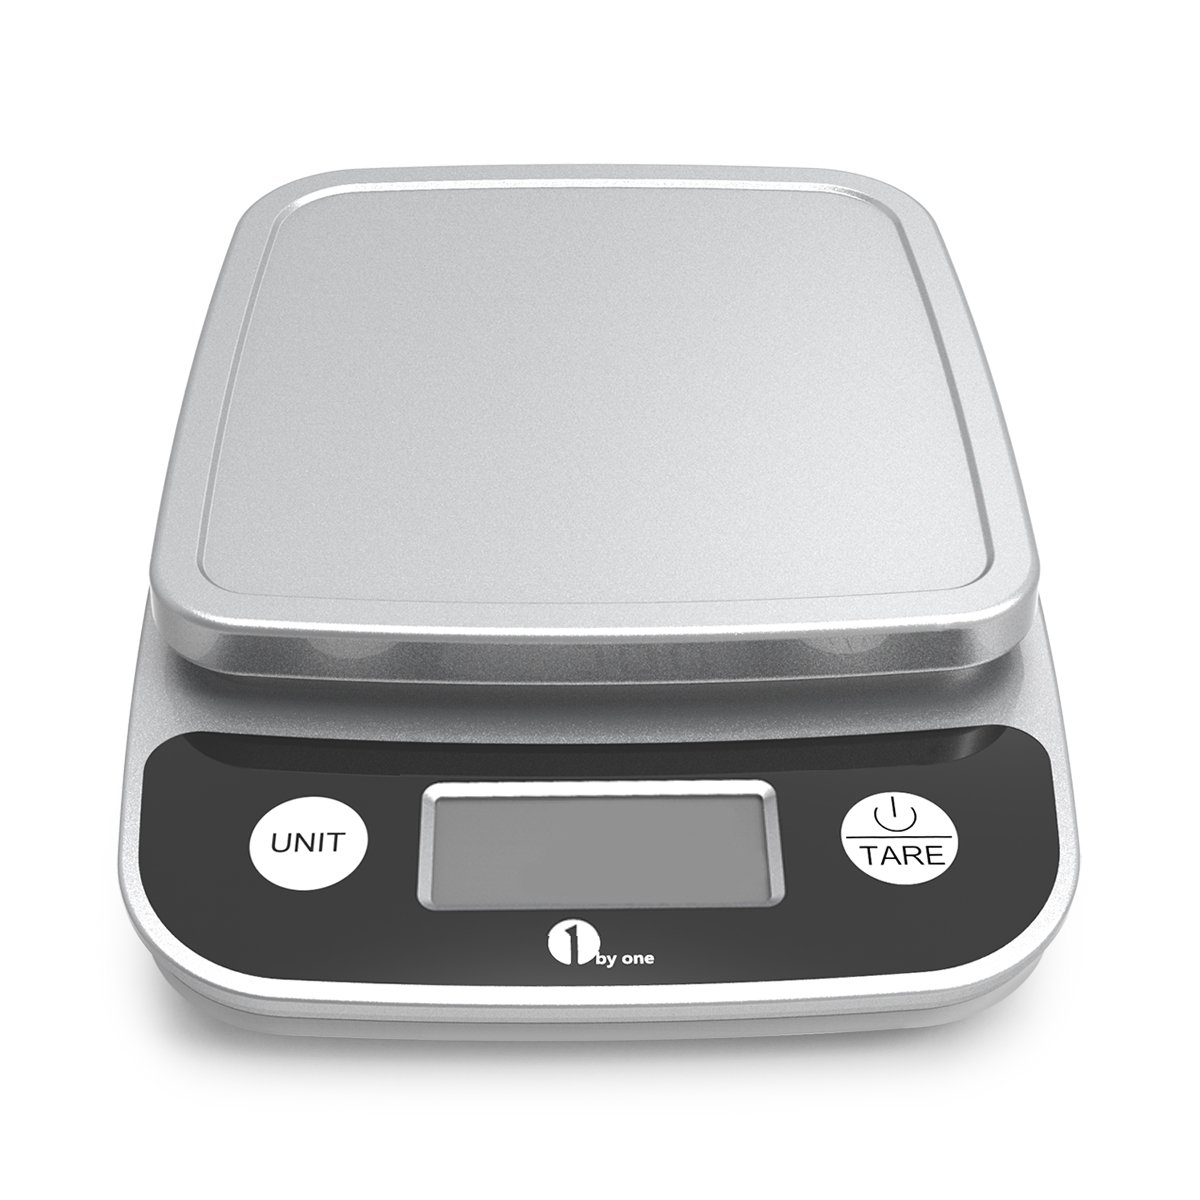 1byone digital kitchen scale precise cooking scale and for Digital jewelry scale target